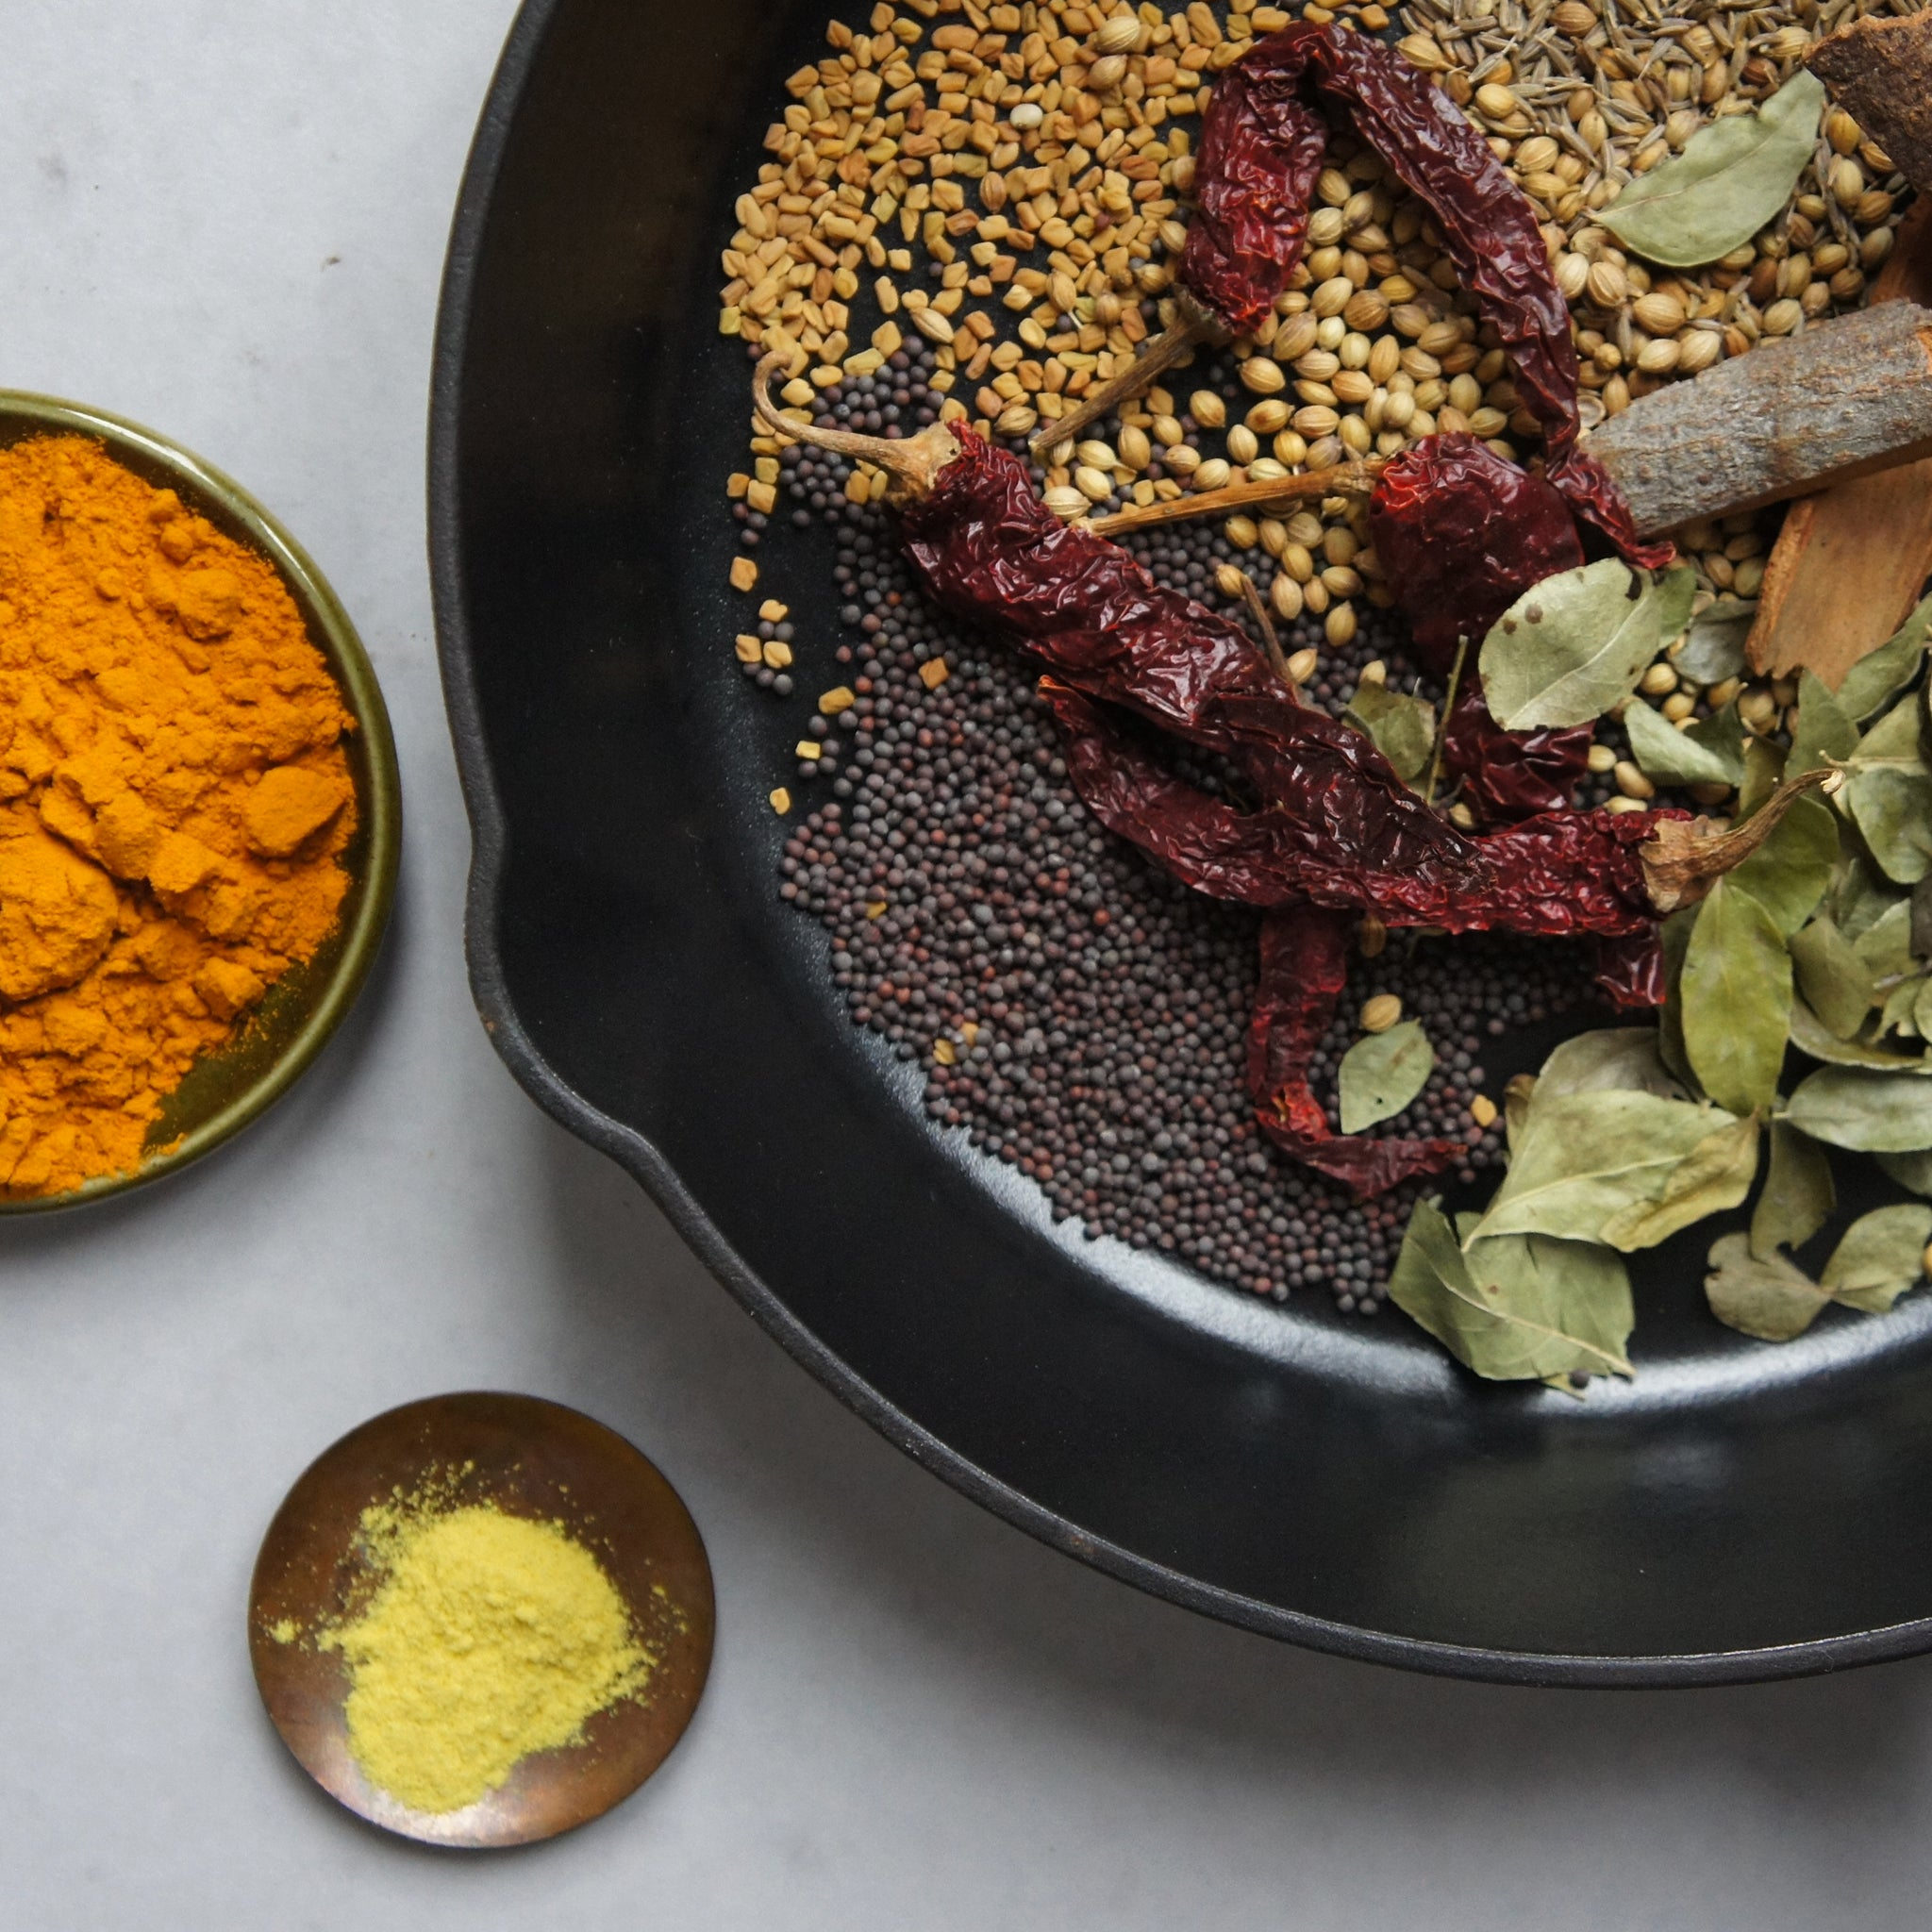 rasam spice blend in cast iron skillet